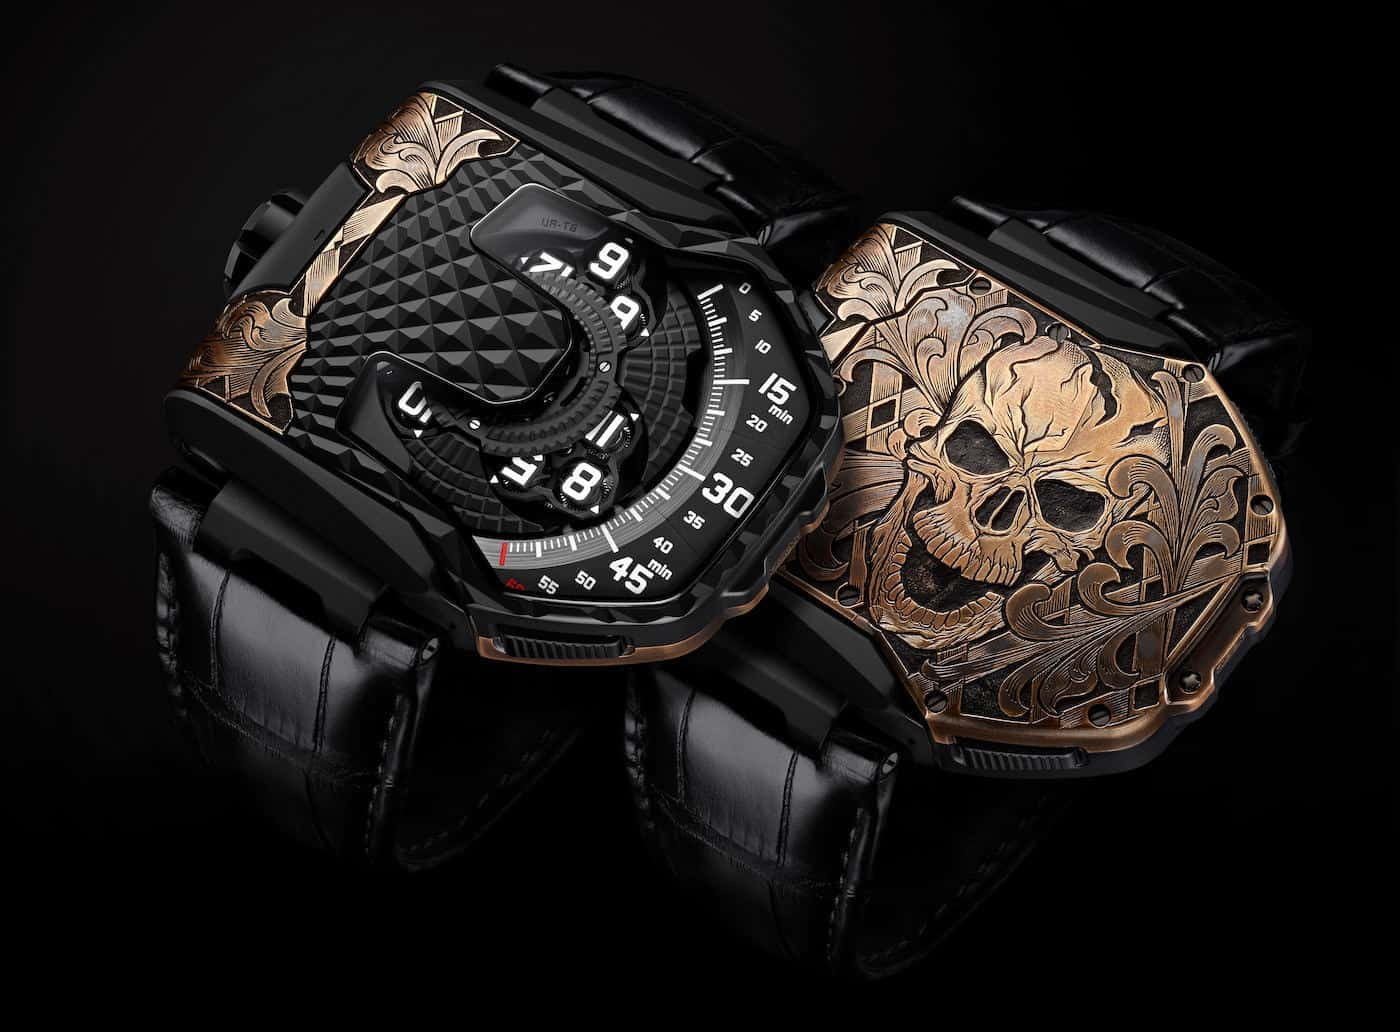 There's a New Urwerk in Town: The UR-T8 Skull Watch